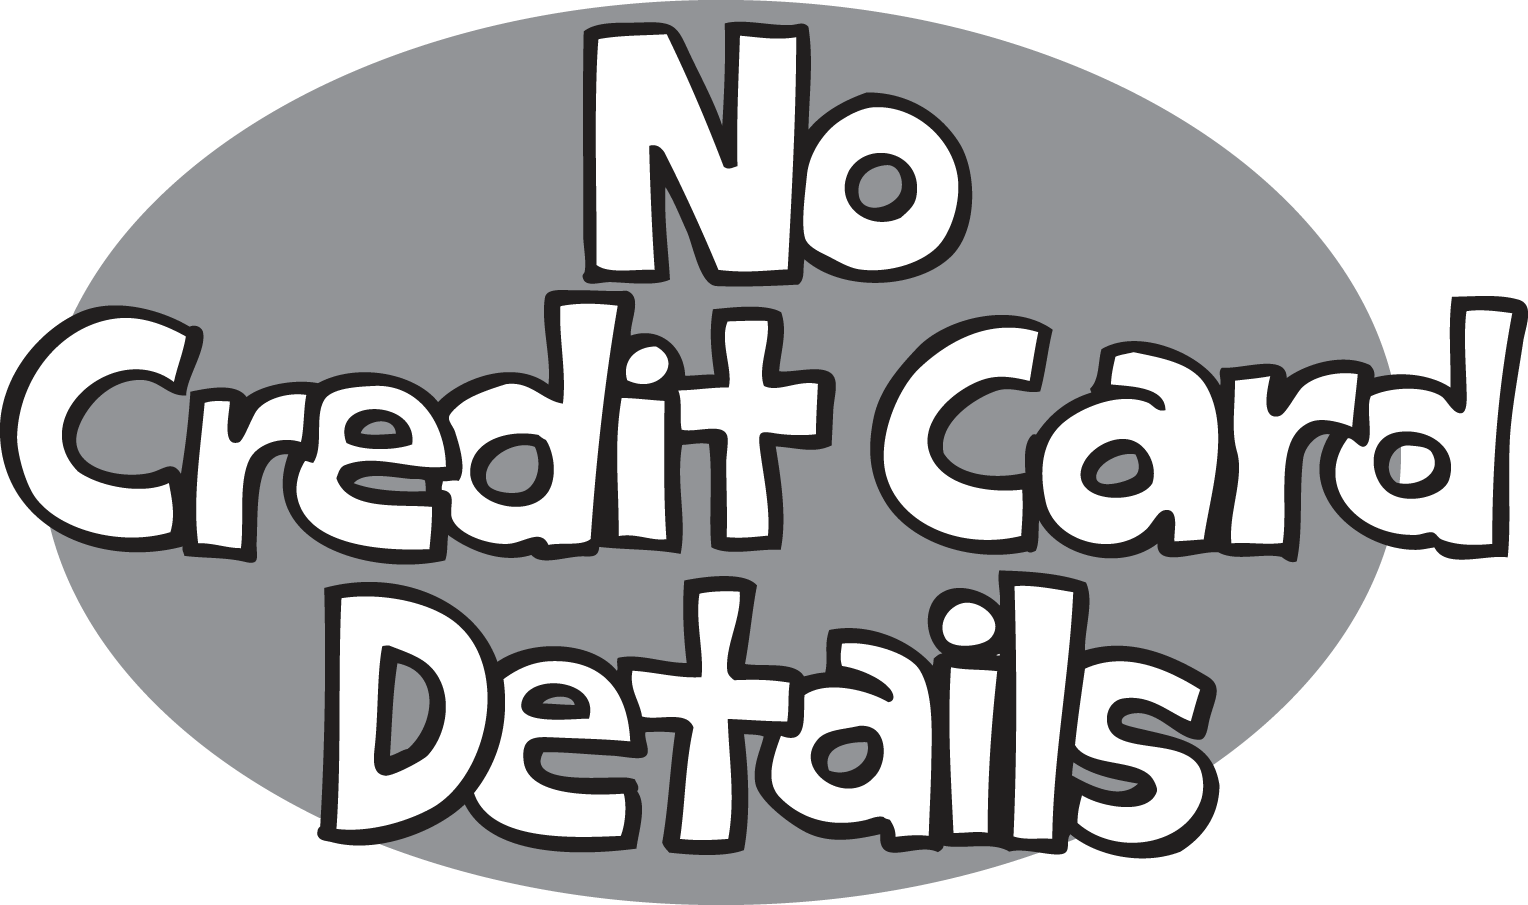 No credit card details w gray